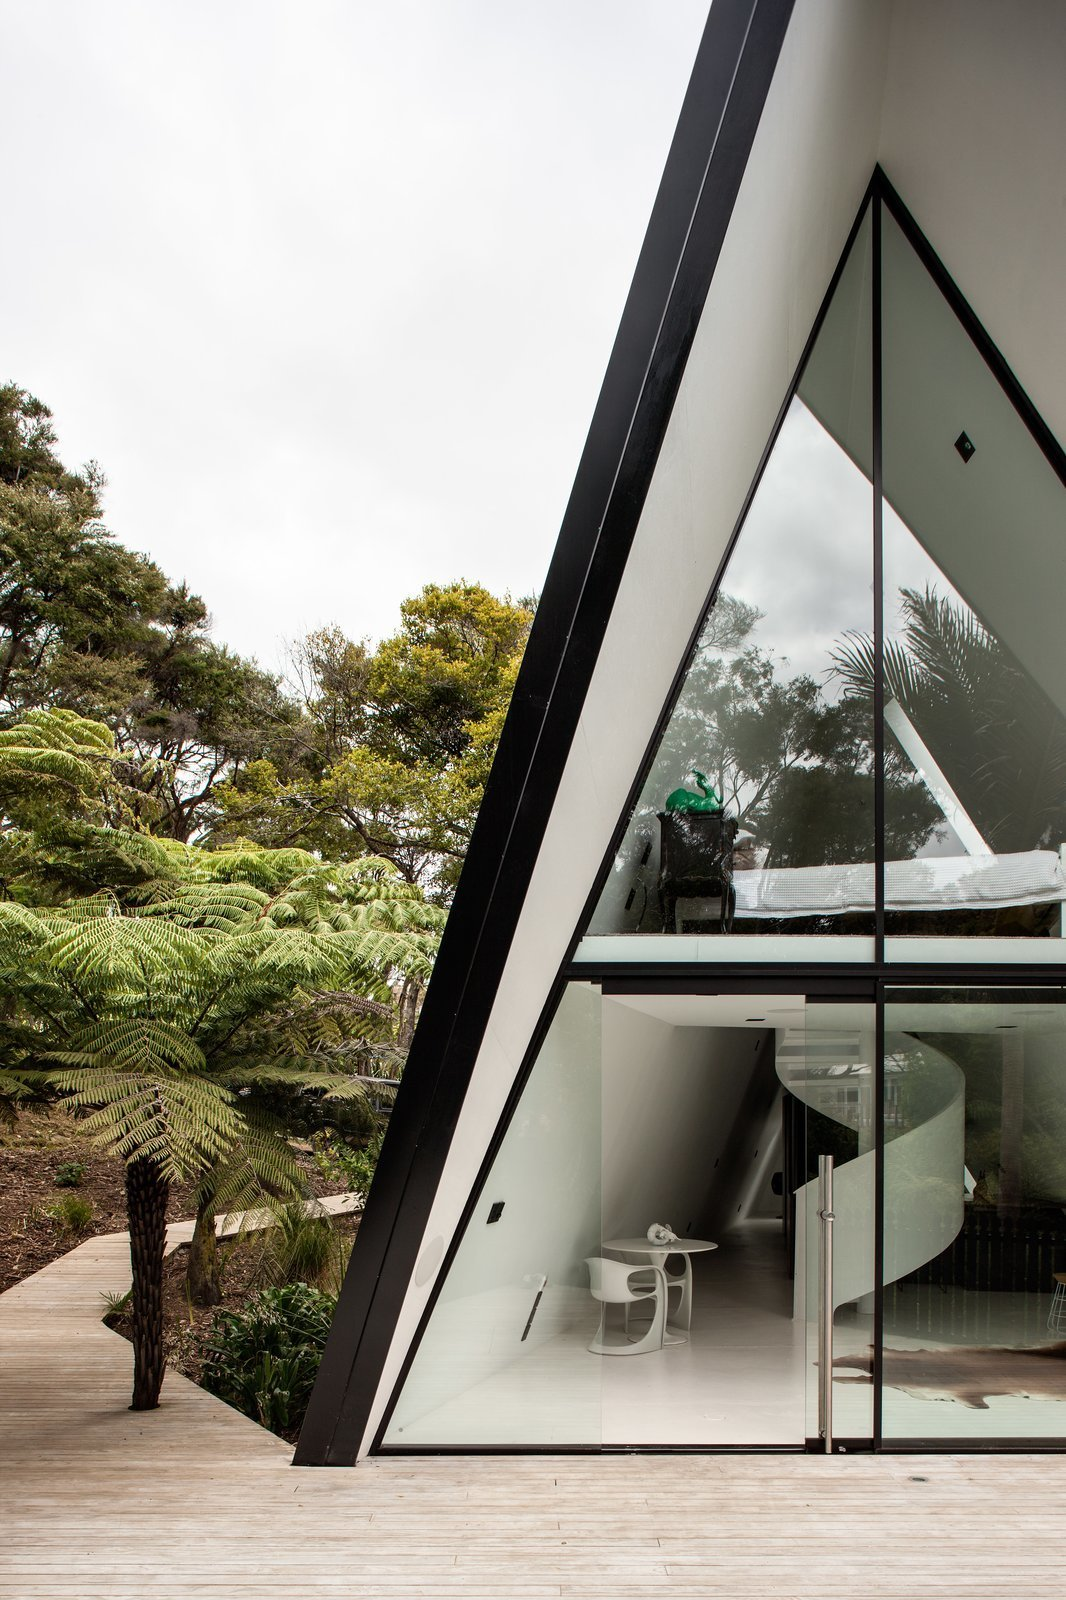 Open Kitchen No Island This Modern Tent House Is A Fuss-free Nature Escape - Curbed